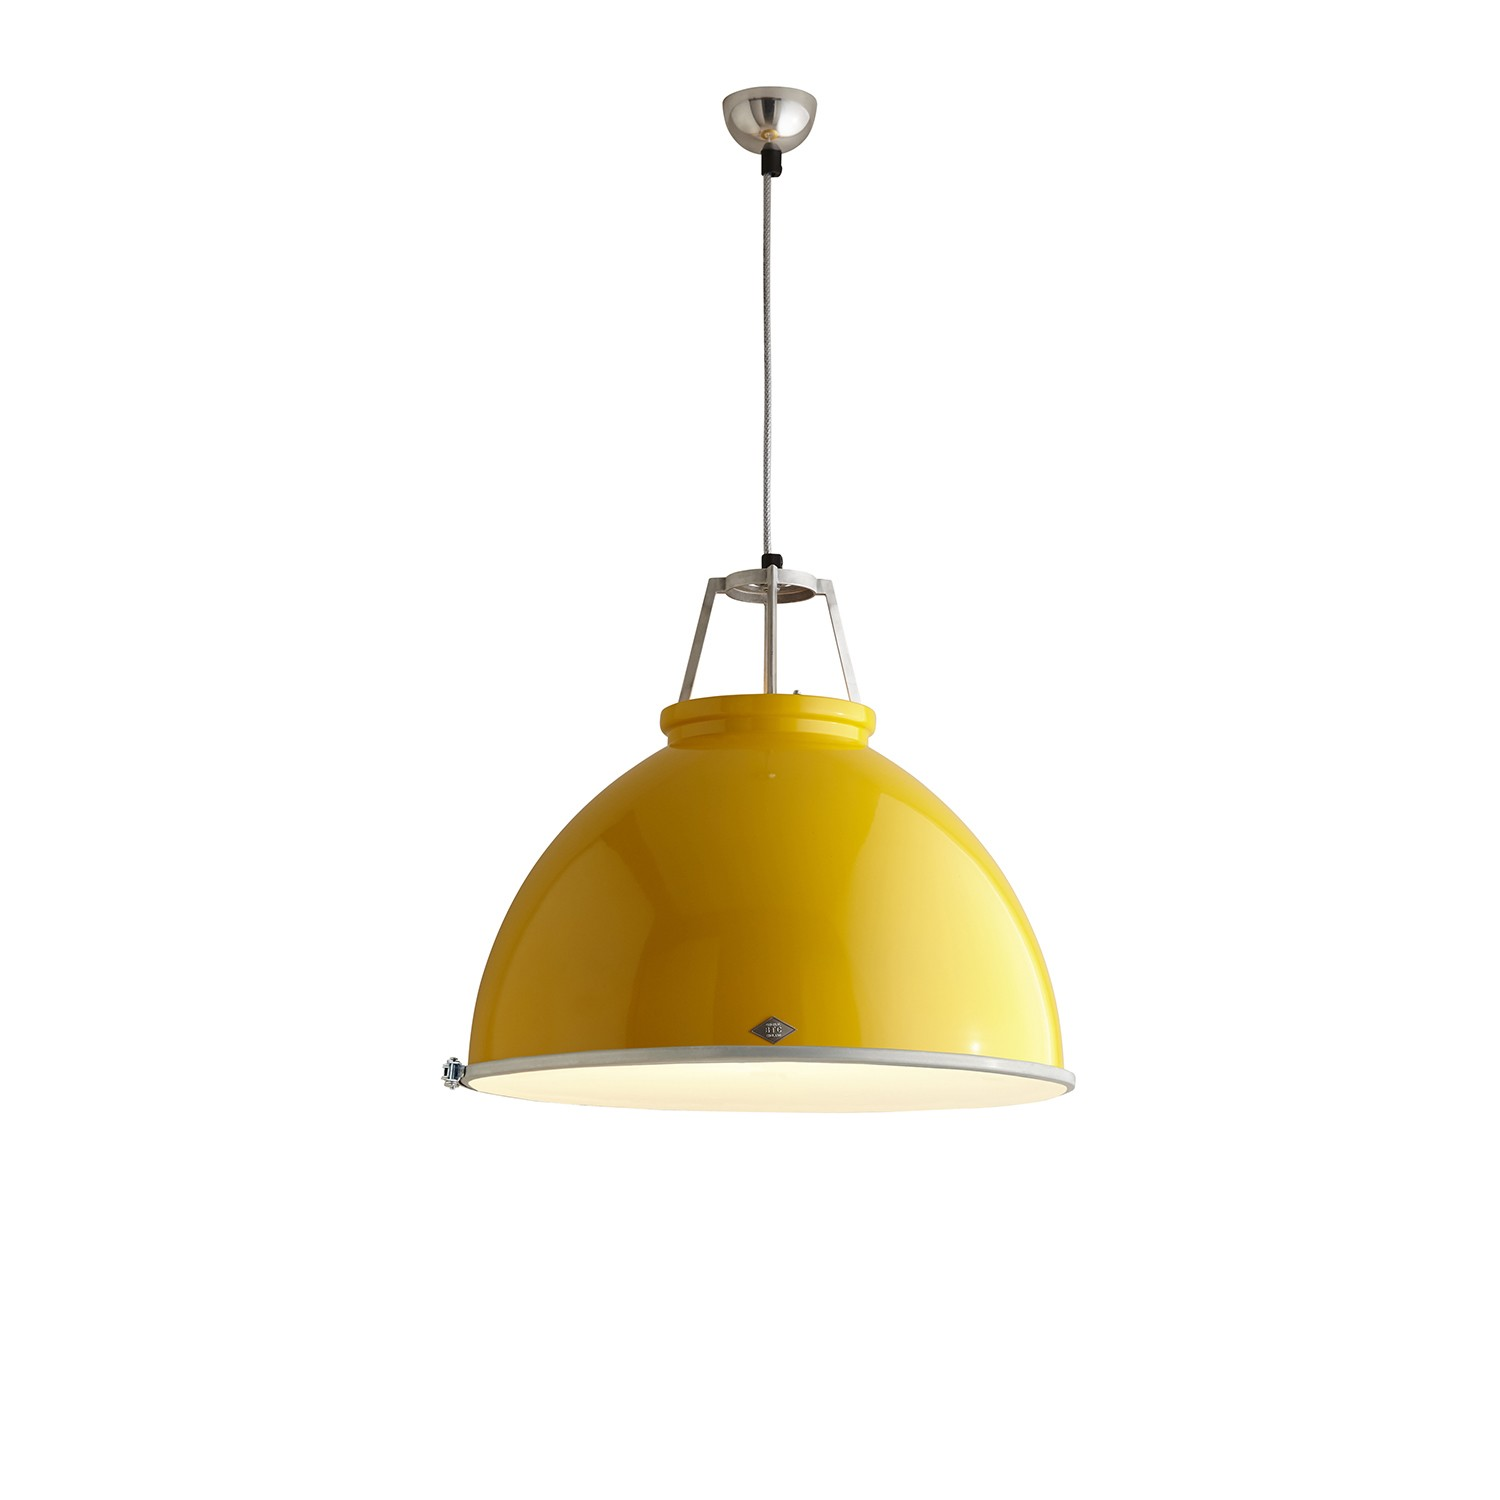 Titan Size 5 Pendant Light Yellow with Etched Glass